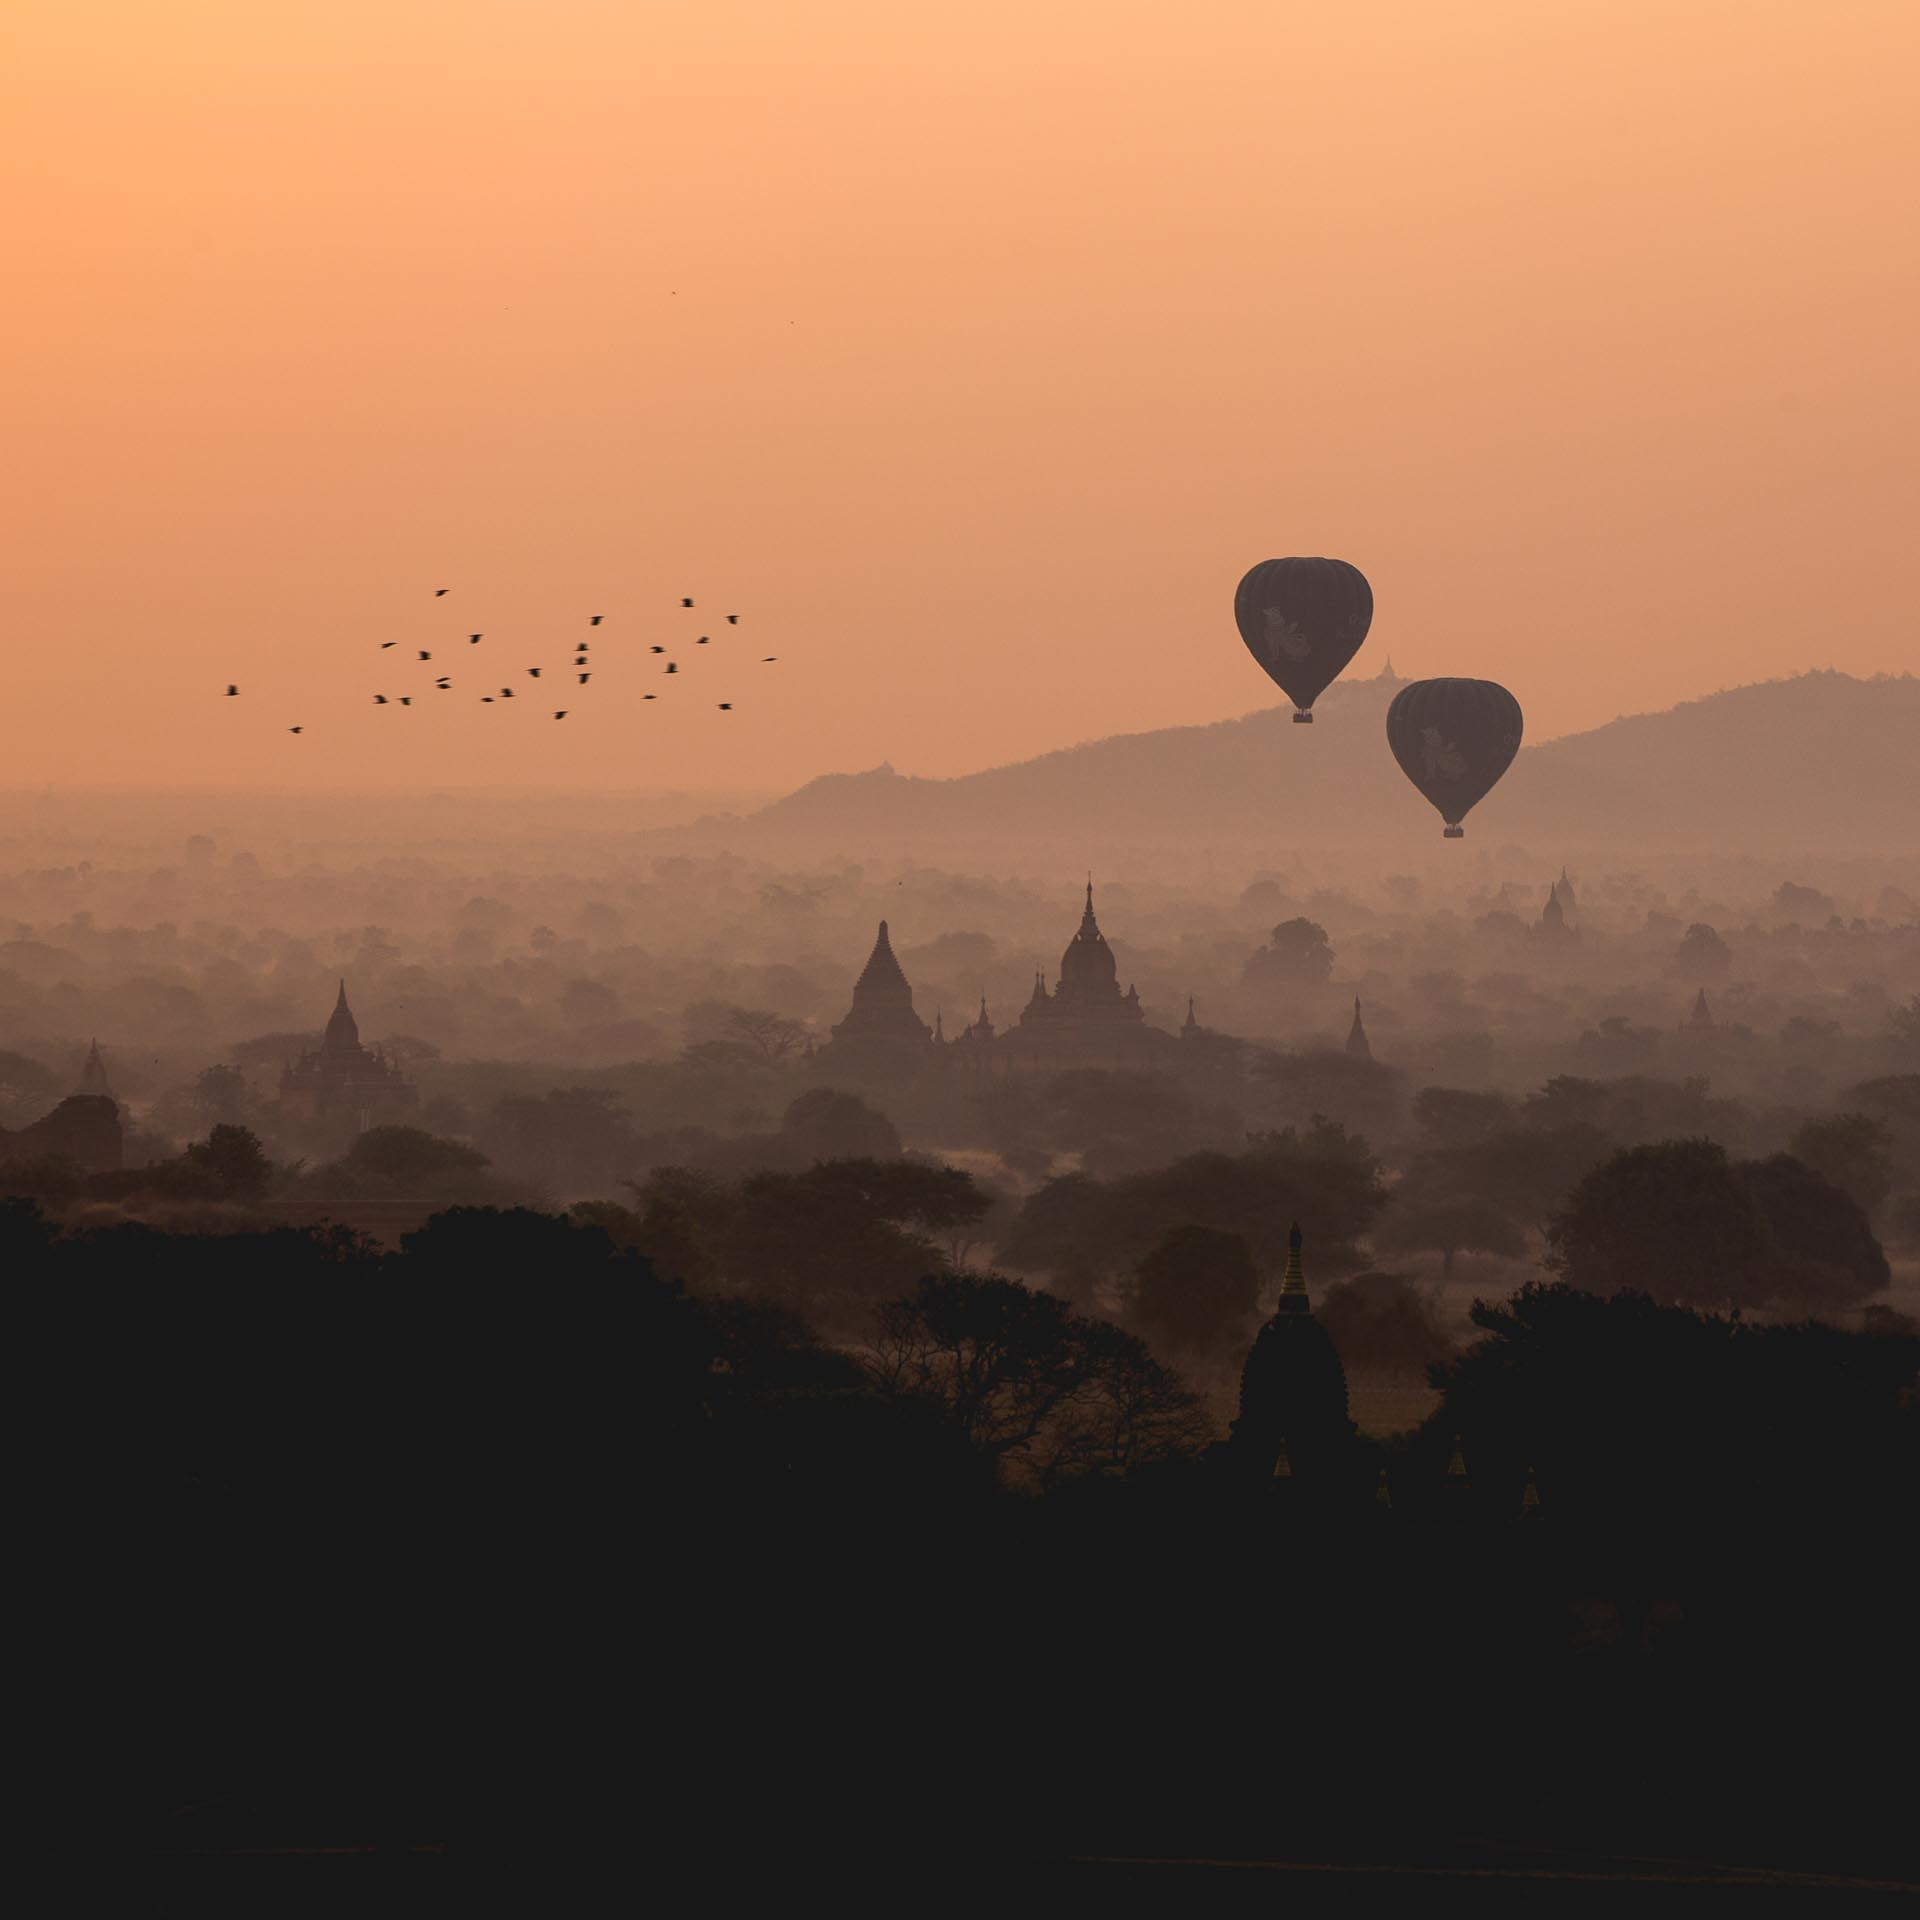 Sunrise and hot air balloons over Bagan. Myanmar